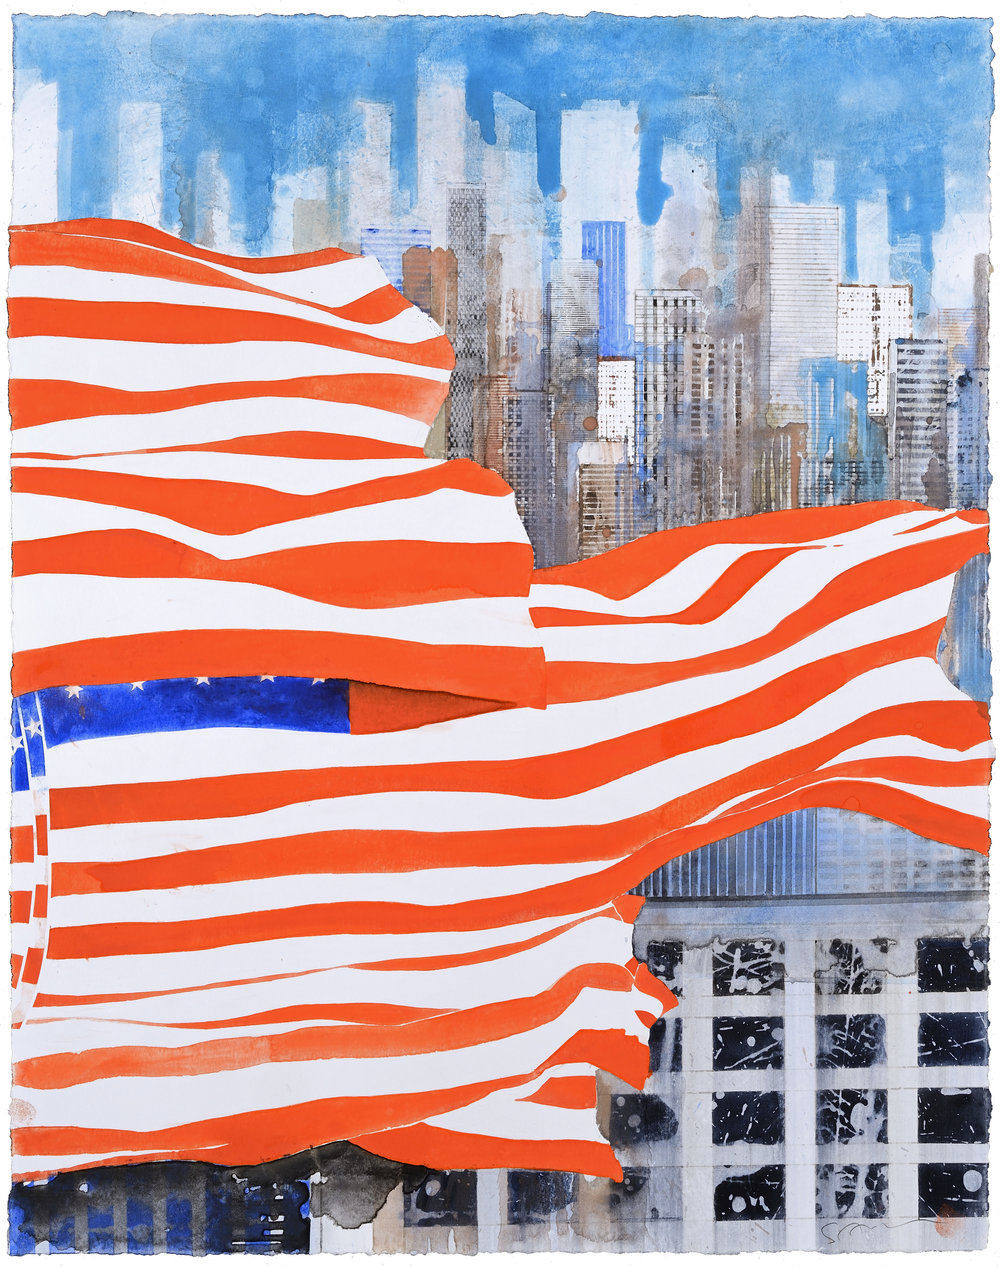 US Flag III, watercolor, 61 x 48 cm, 24 x 19 in, 2015